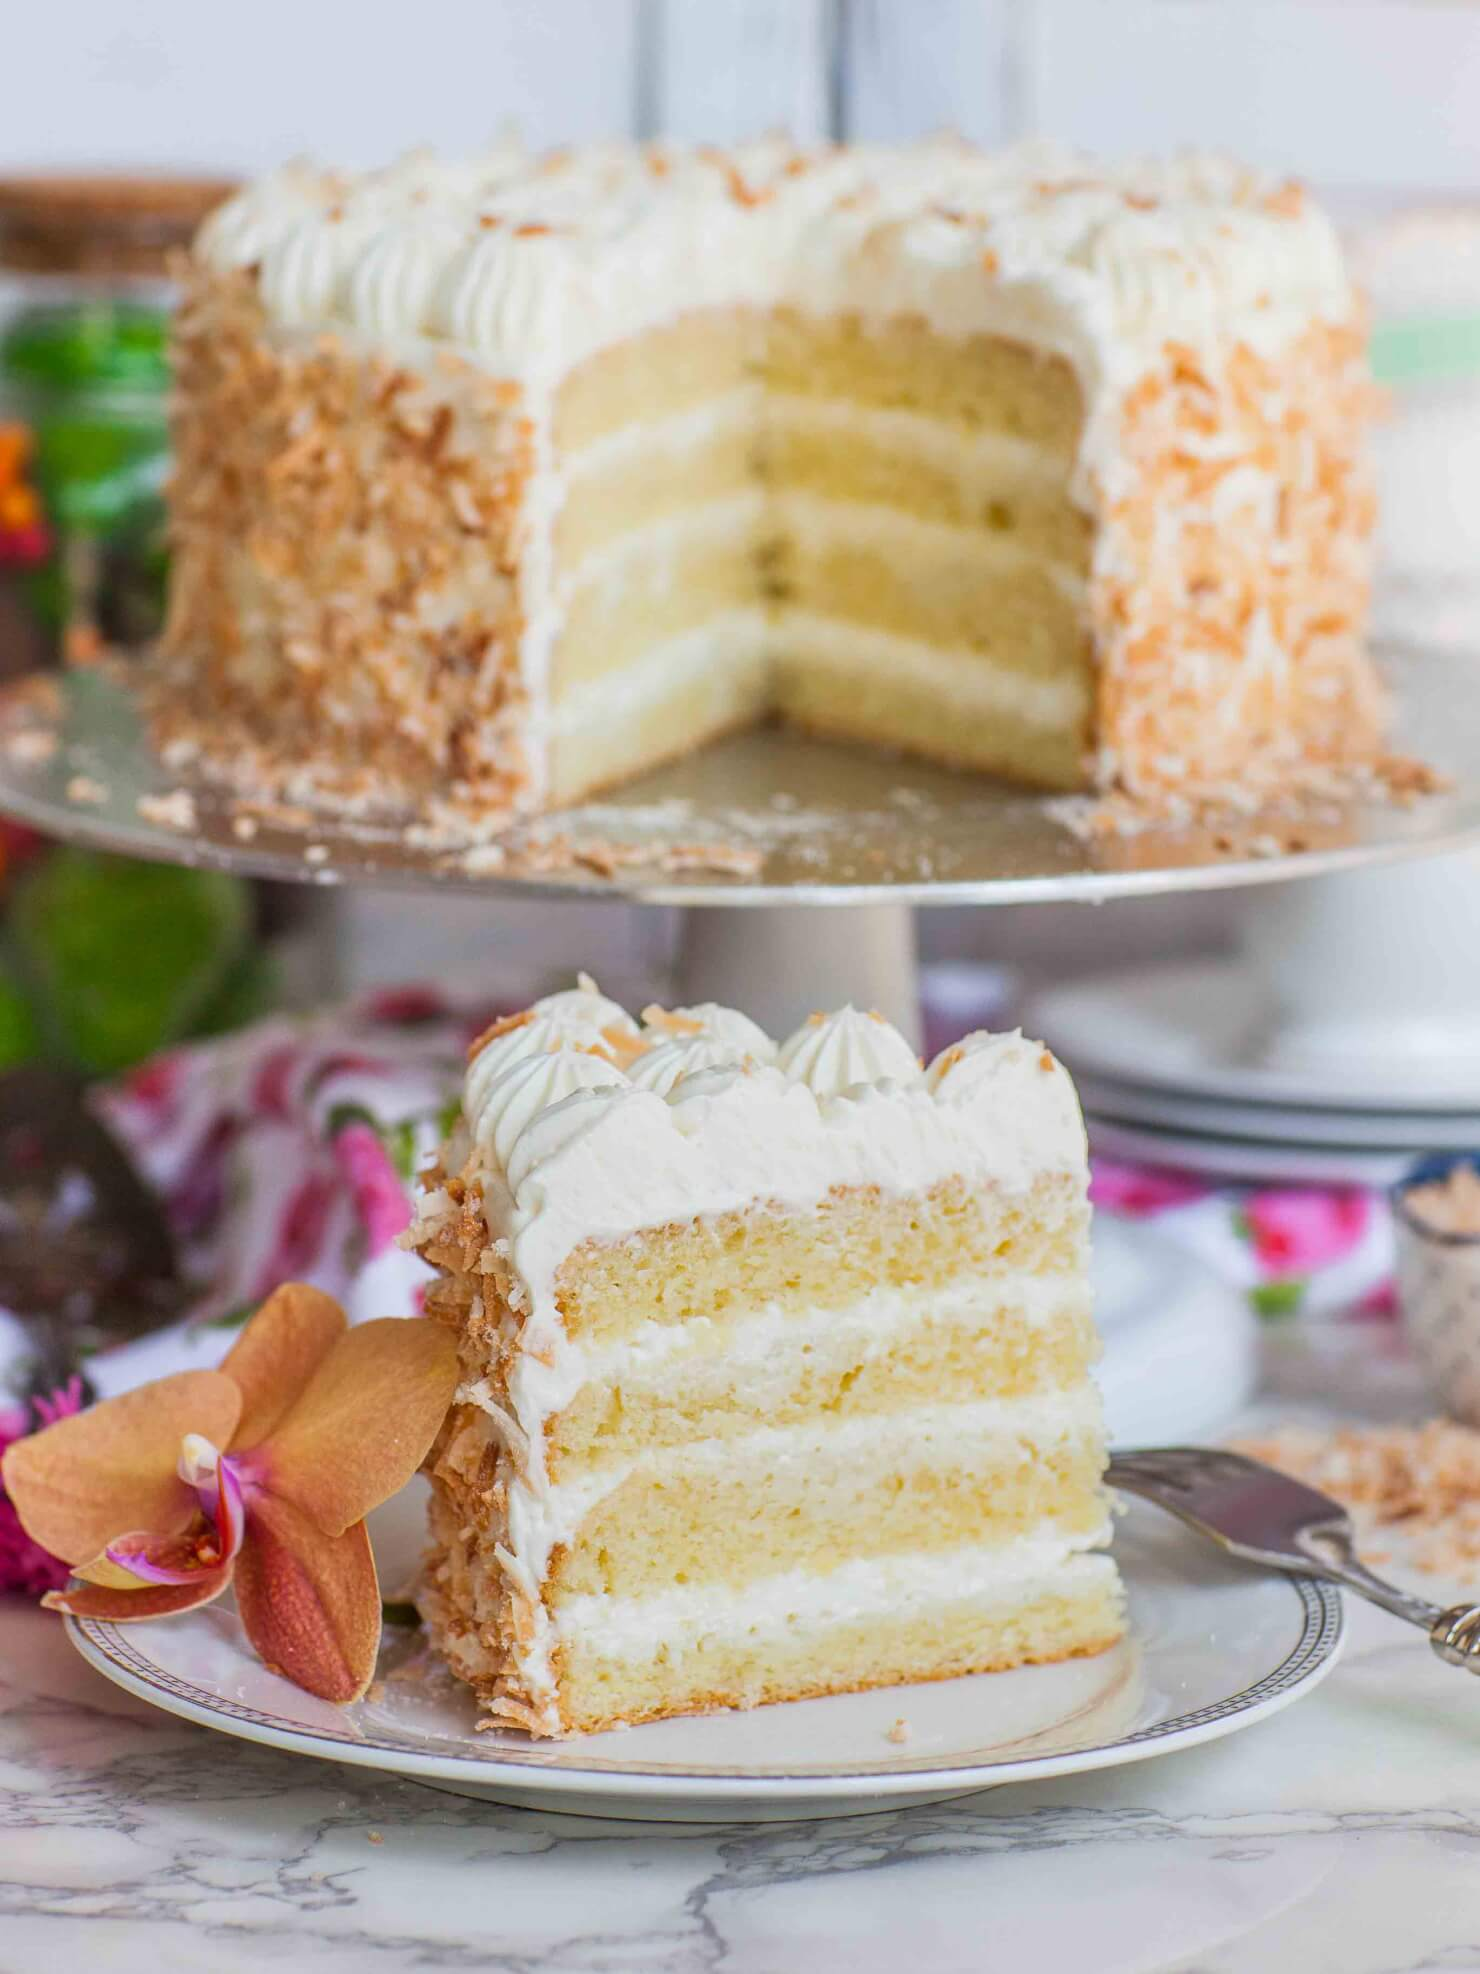 Wedding Cake Recipe.Coconut Italian Wedding Cake Video